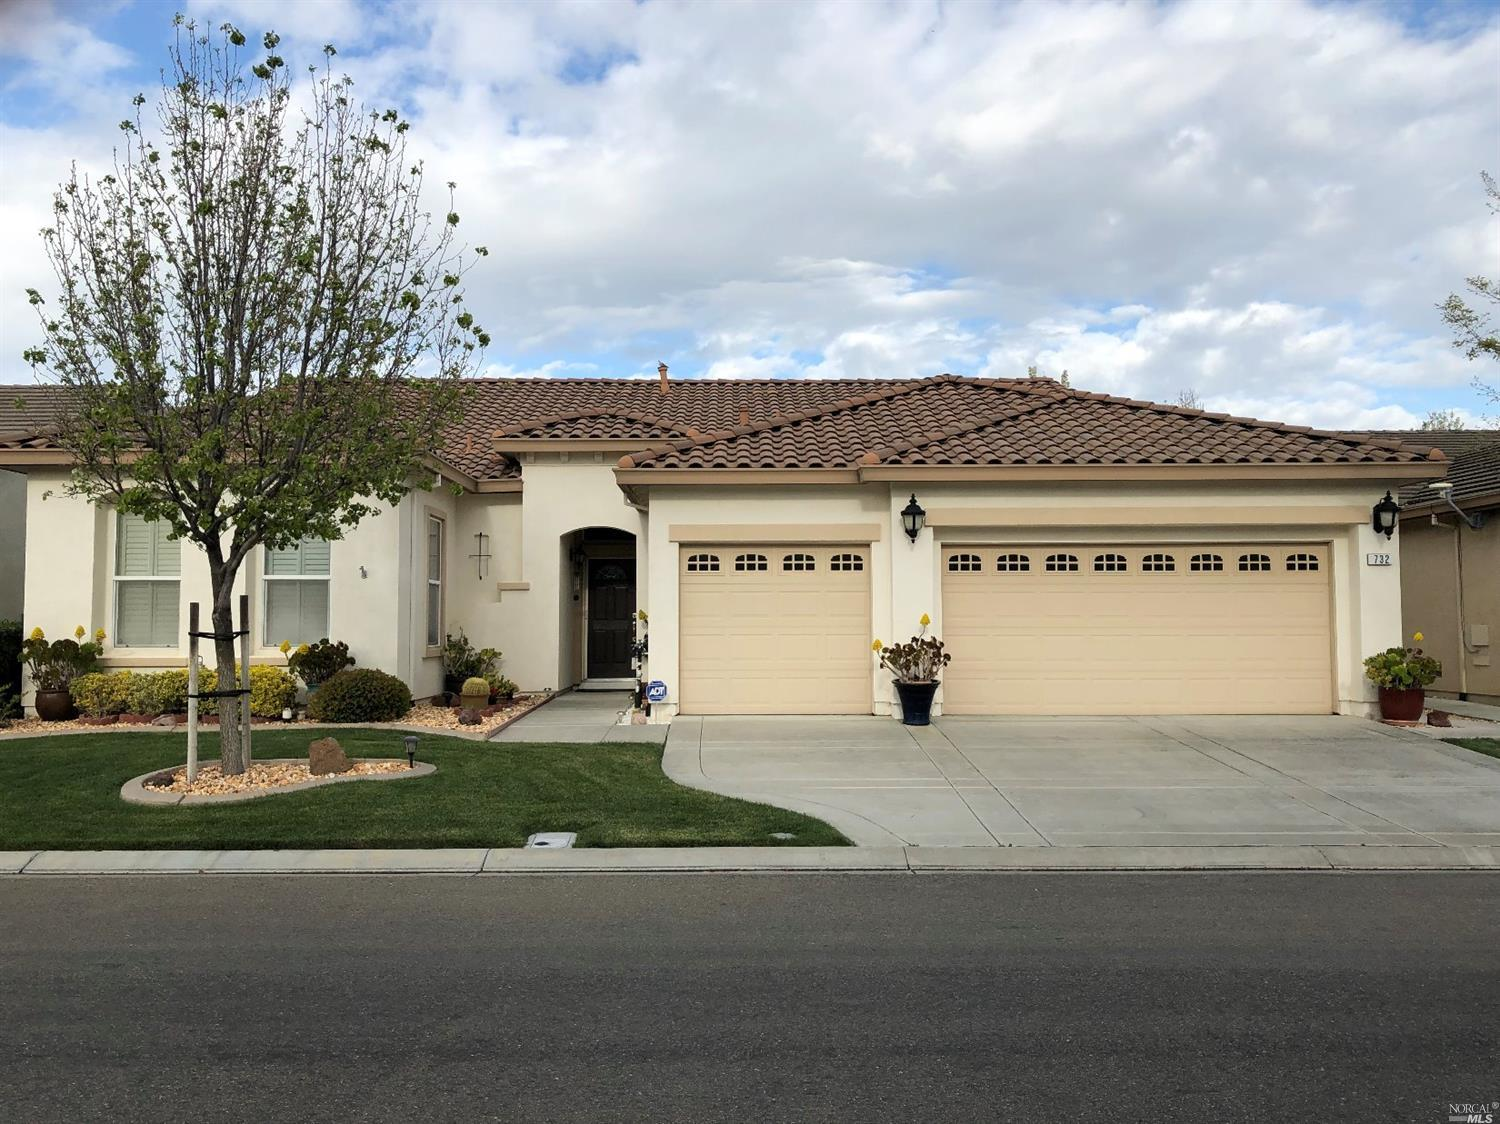 This is in active adult (55+) gated community in Trilogy, Rio Vista, California. This is a beautiful